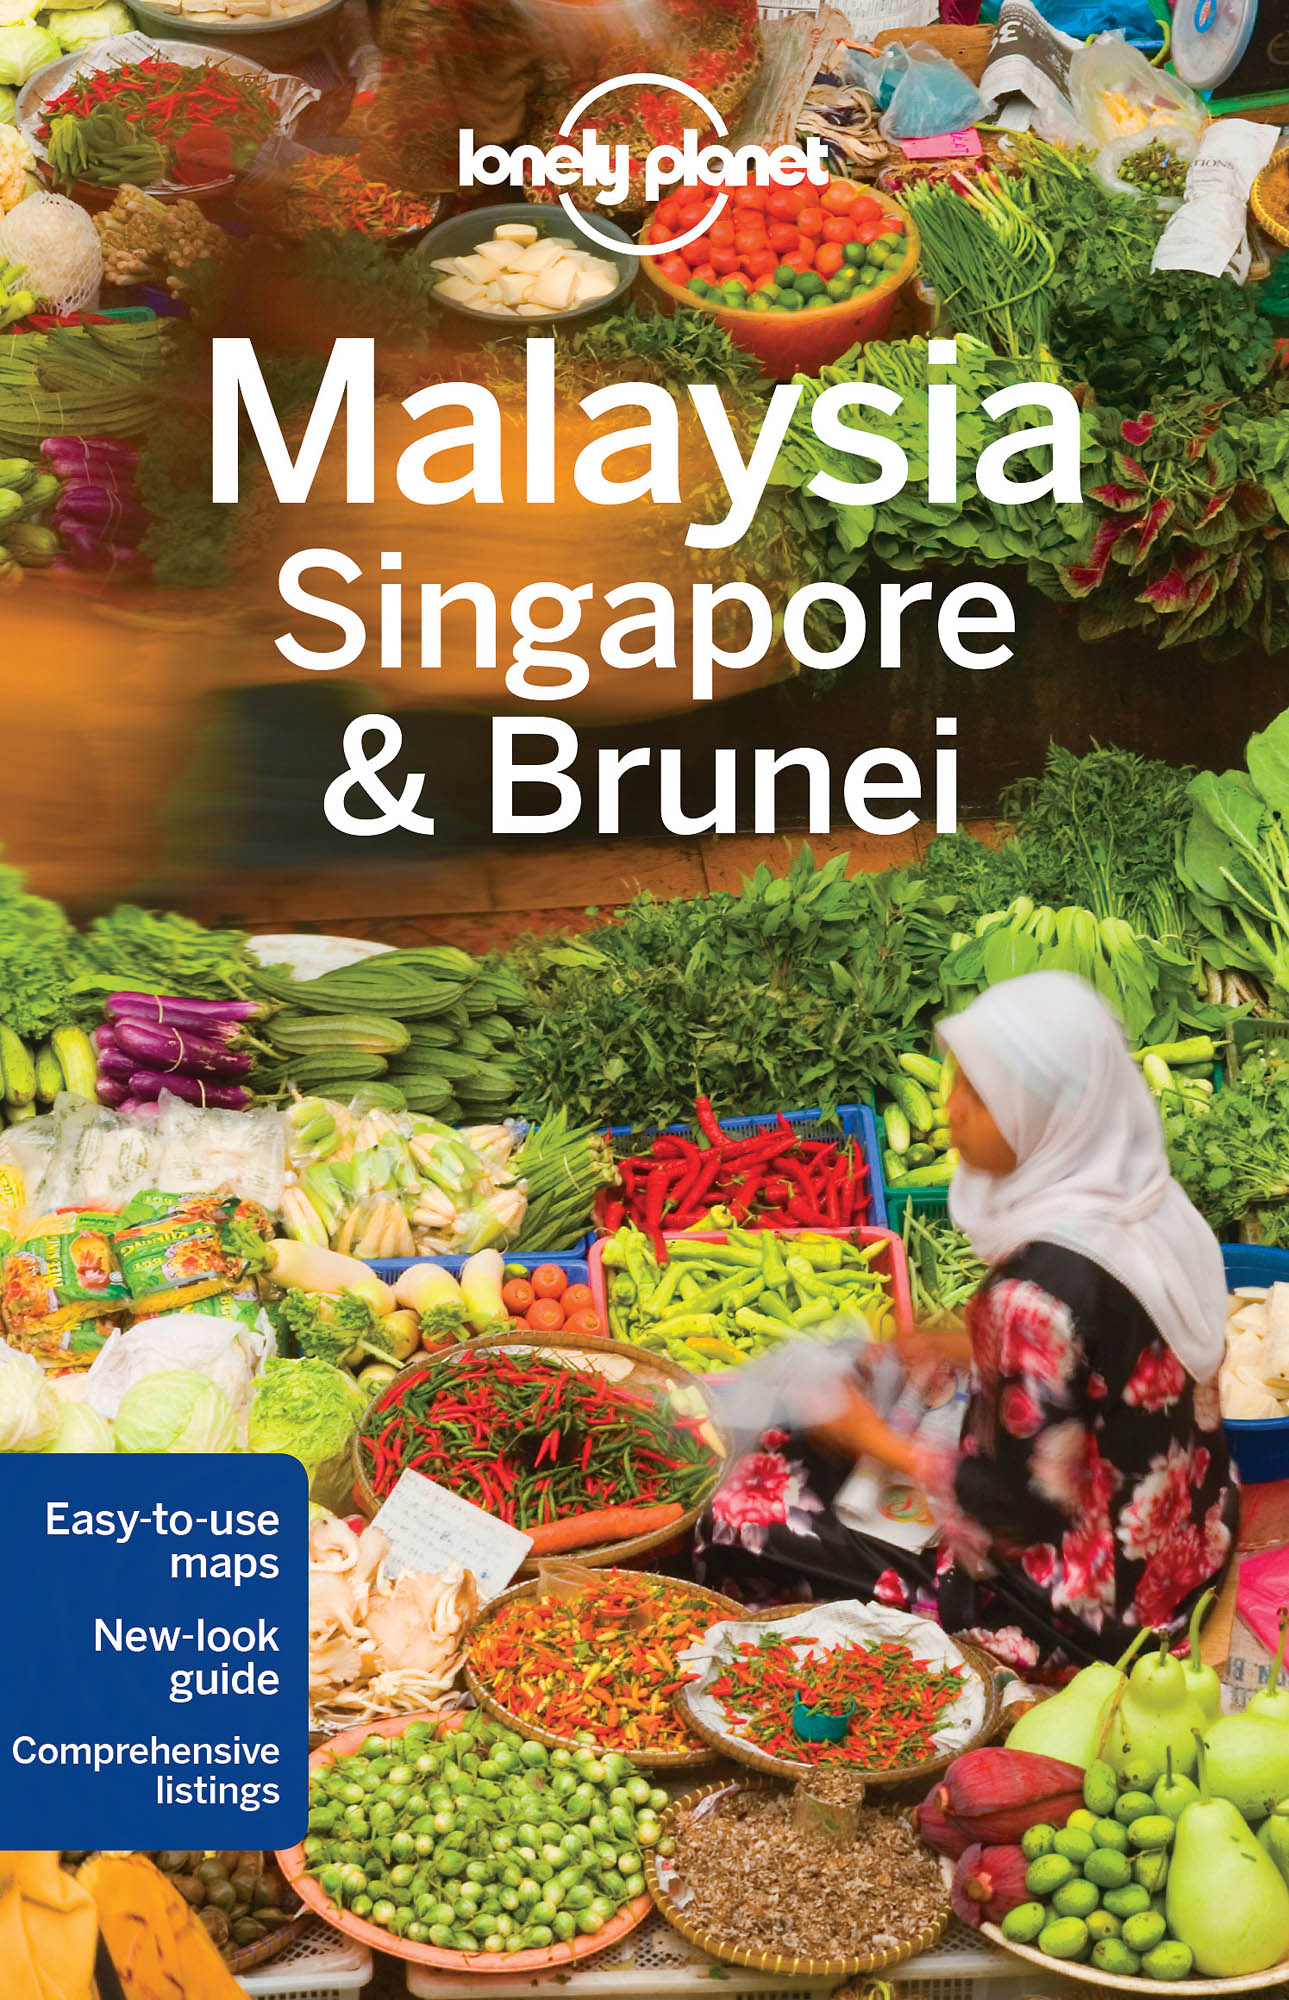 Malajsie (Malaysia, Singapore & Brunei) průvodce 13th 2016 Lonely Planet